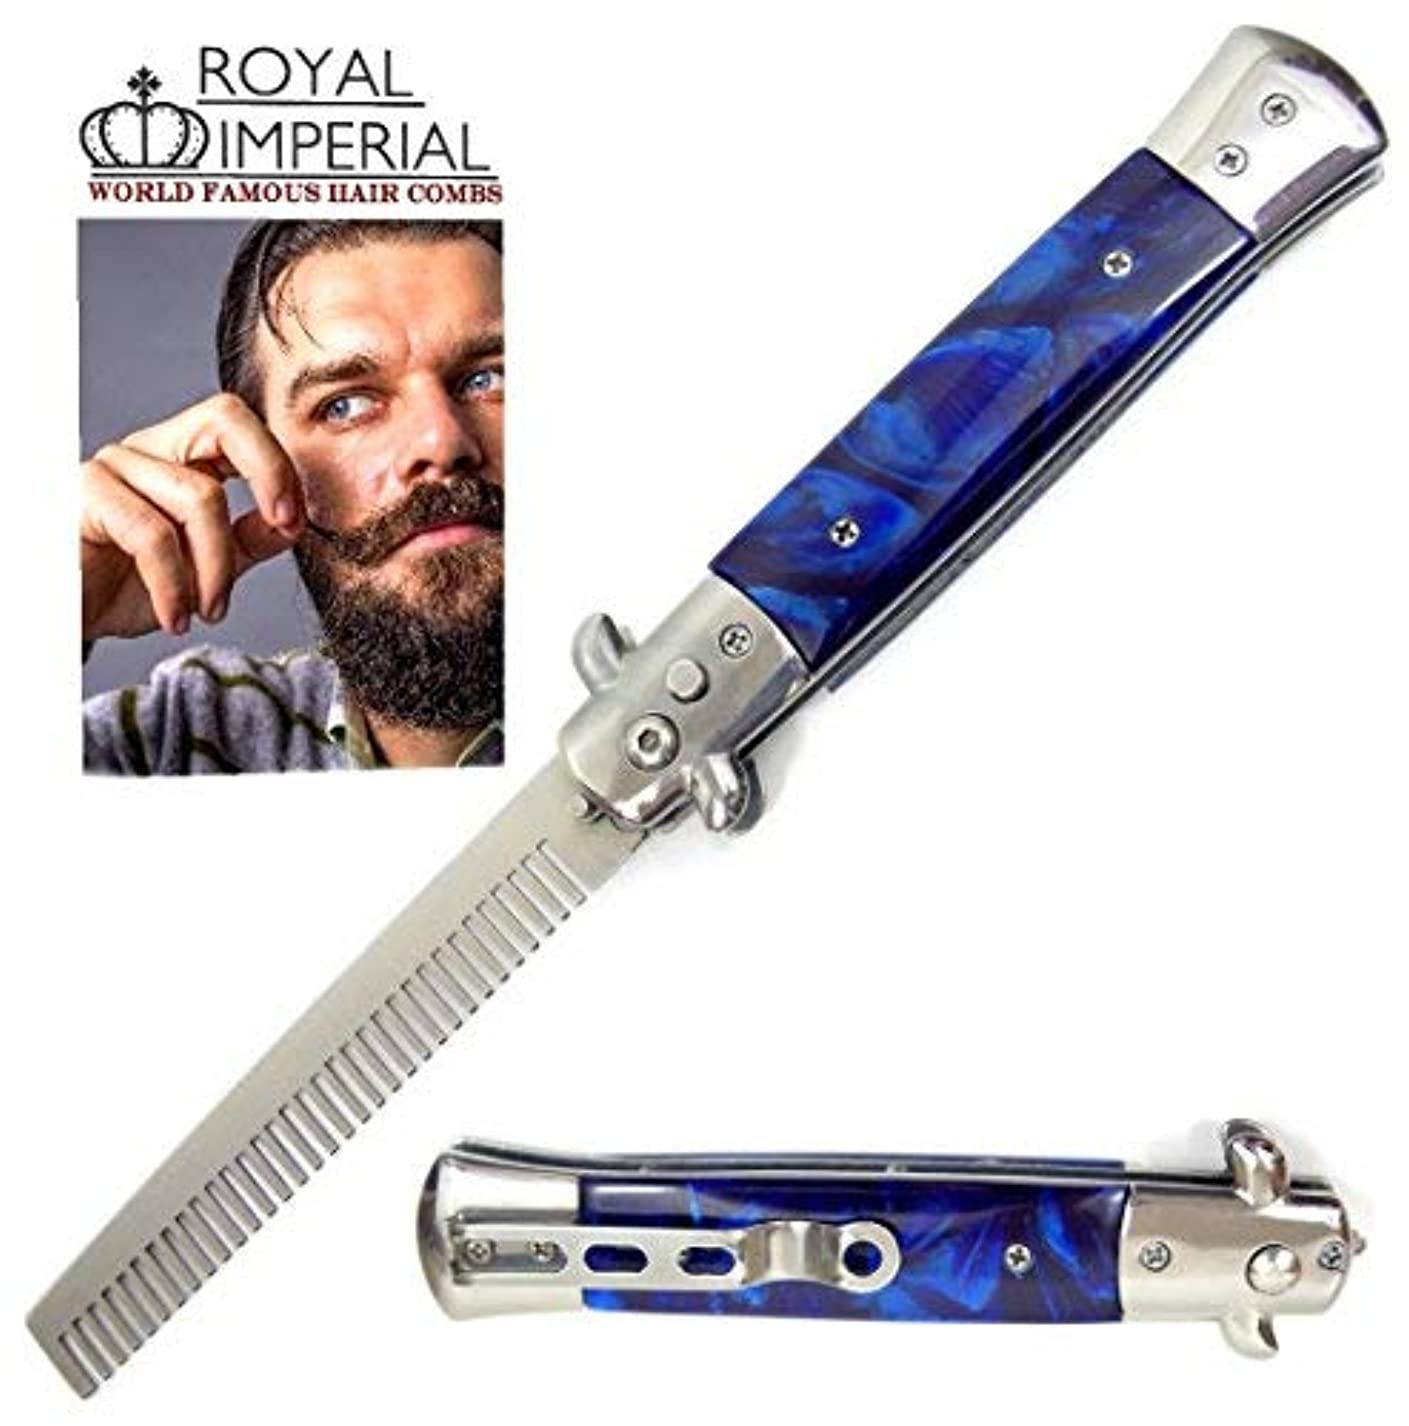 グリース息切れロンドンRoyal Imperial Metal Switchblade Pocket Folding Flick Hair Comb For Beard, Mustache, Head BLUE CYCLONE Handle...